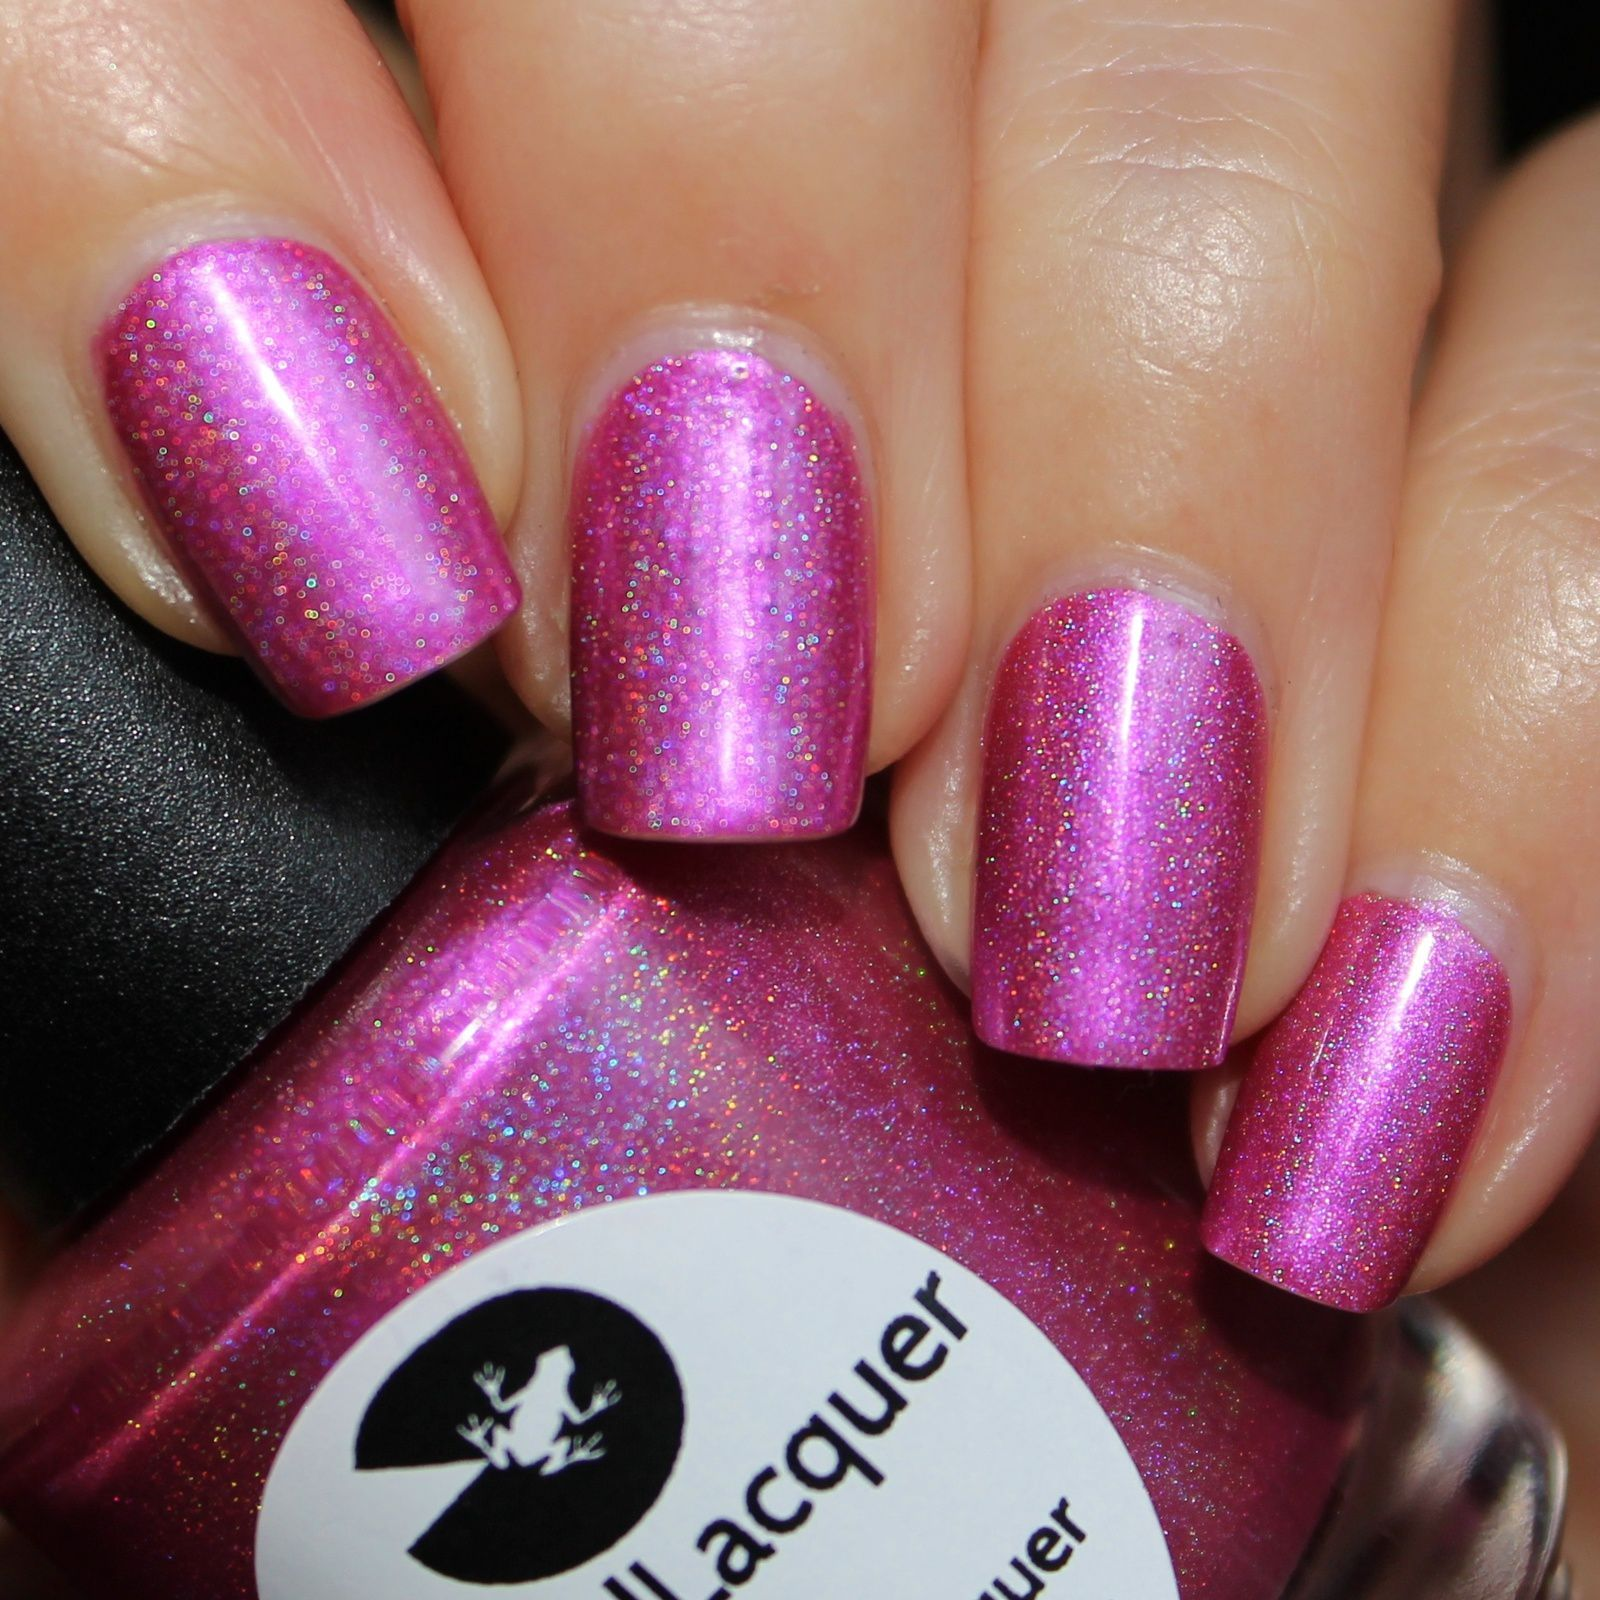 Duri Rejuvacote / Lilypad Lacquer Wink of Pink / Sally Hansen Miracle Gel Top Coat